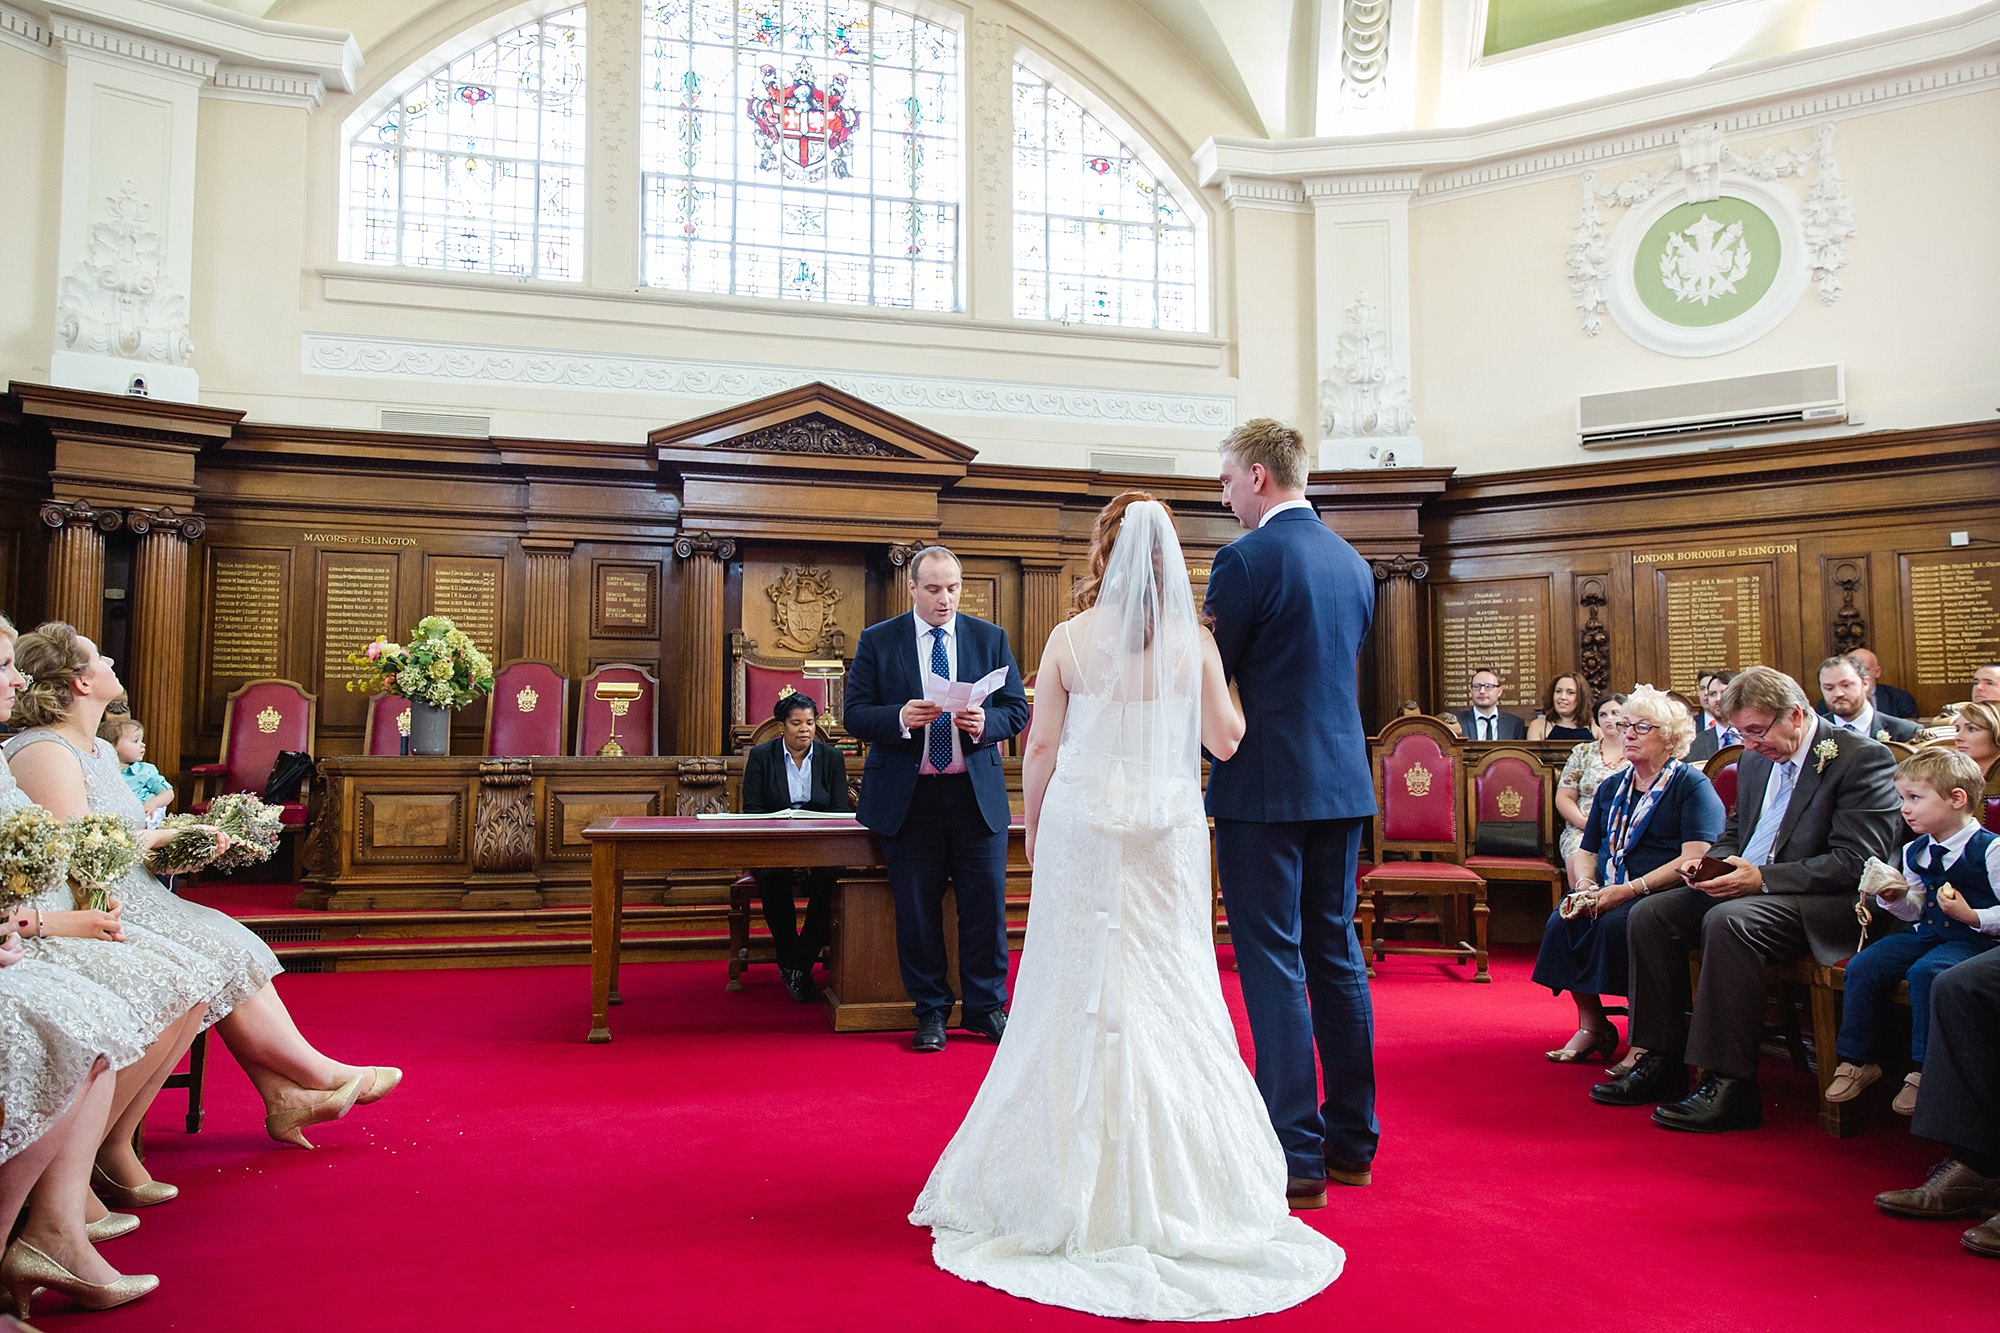 oyster shed wedding a ready at islington town hall ceremony